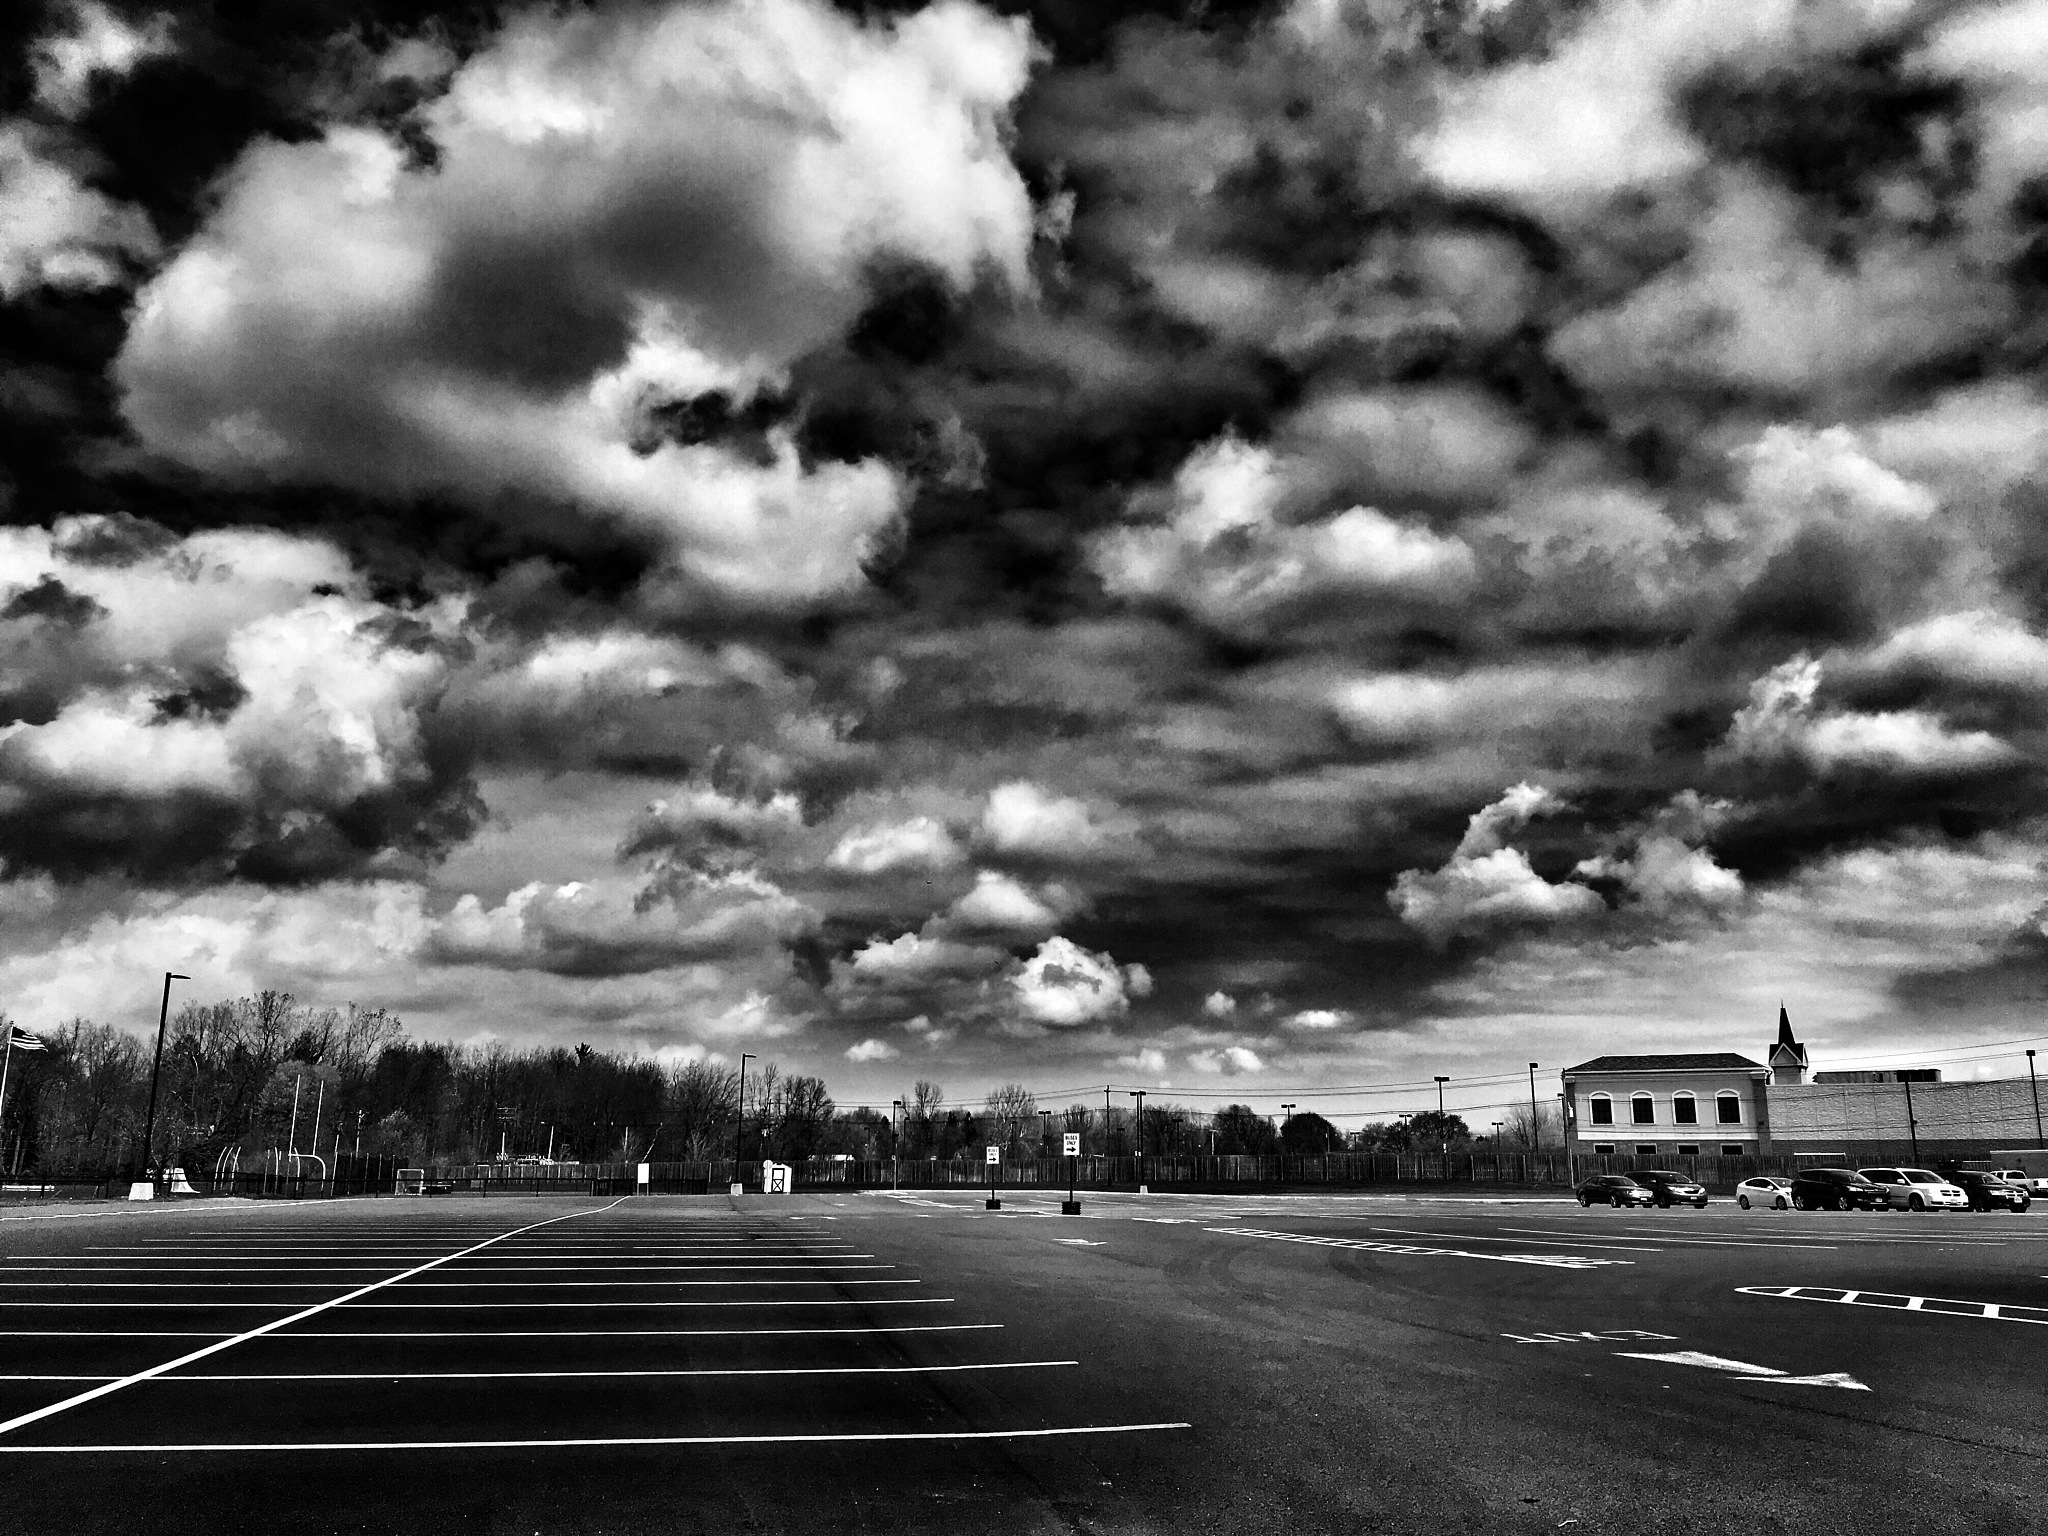 Cloudy Day by Thomas Merring